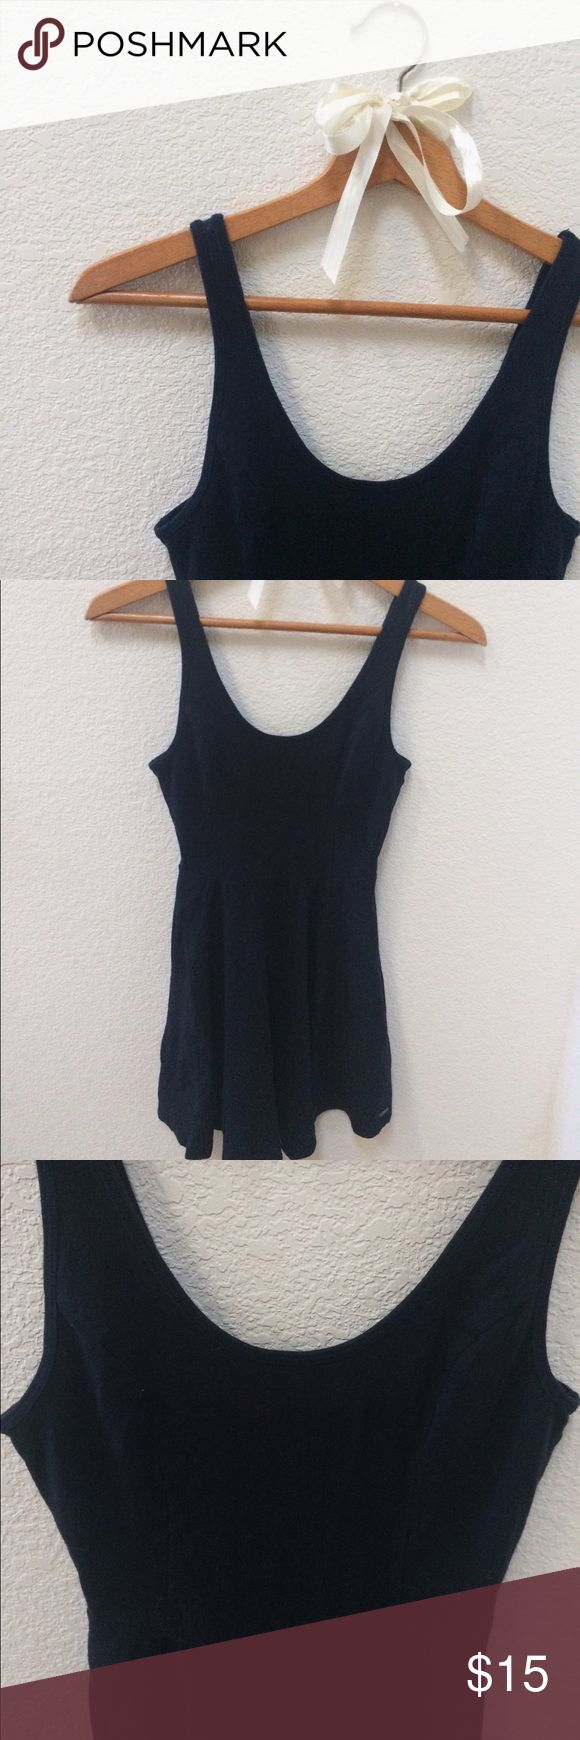 [Hollister] Dark navy skater dress Dark navy dress, size is XS but stretches a lot and is very flattering for those curves 😉 Hollister Dresses